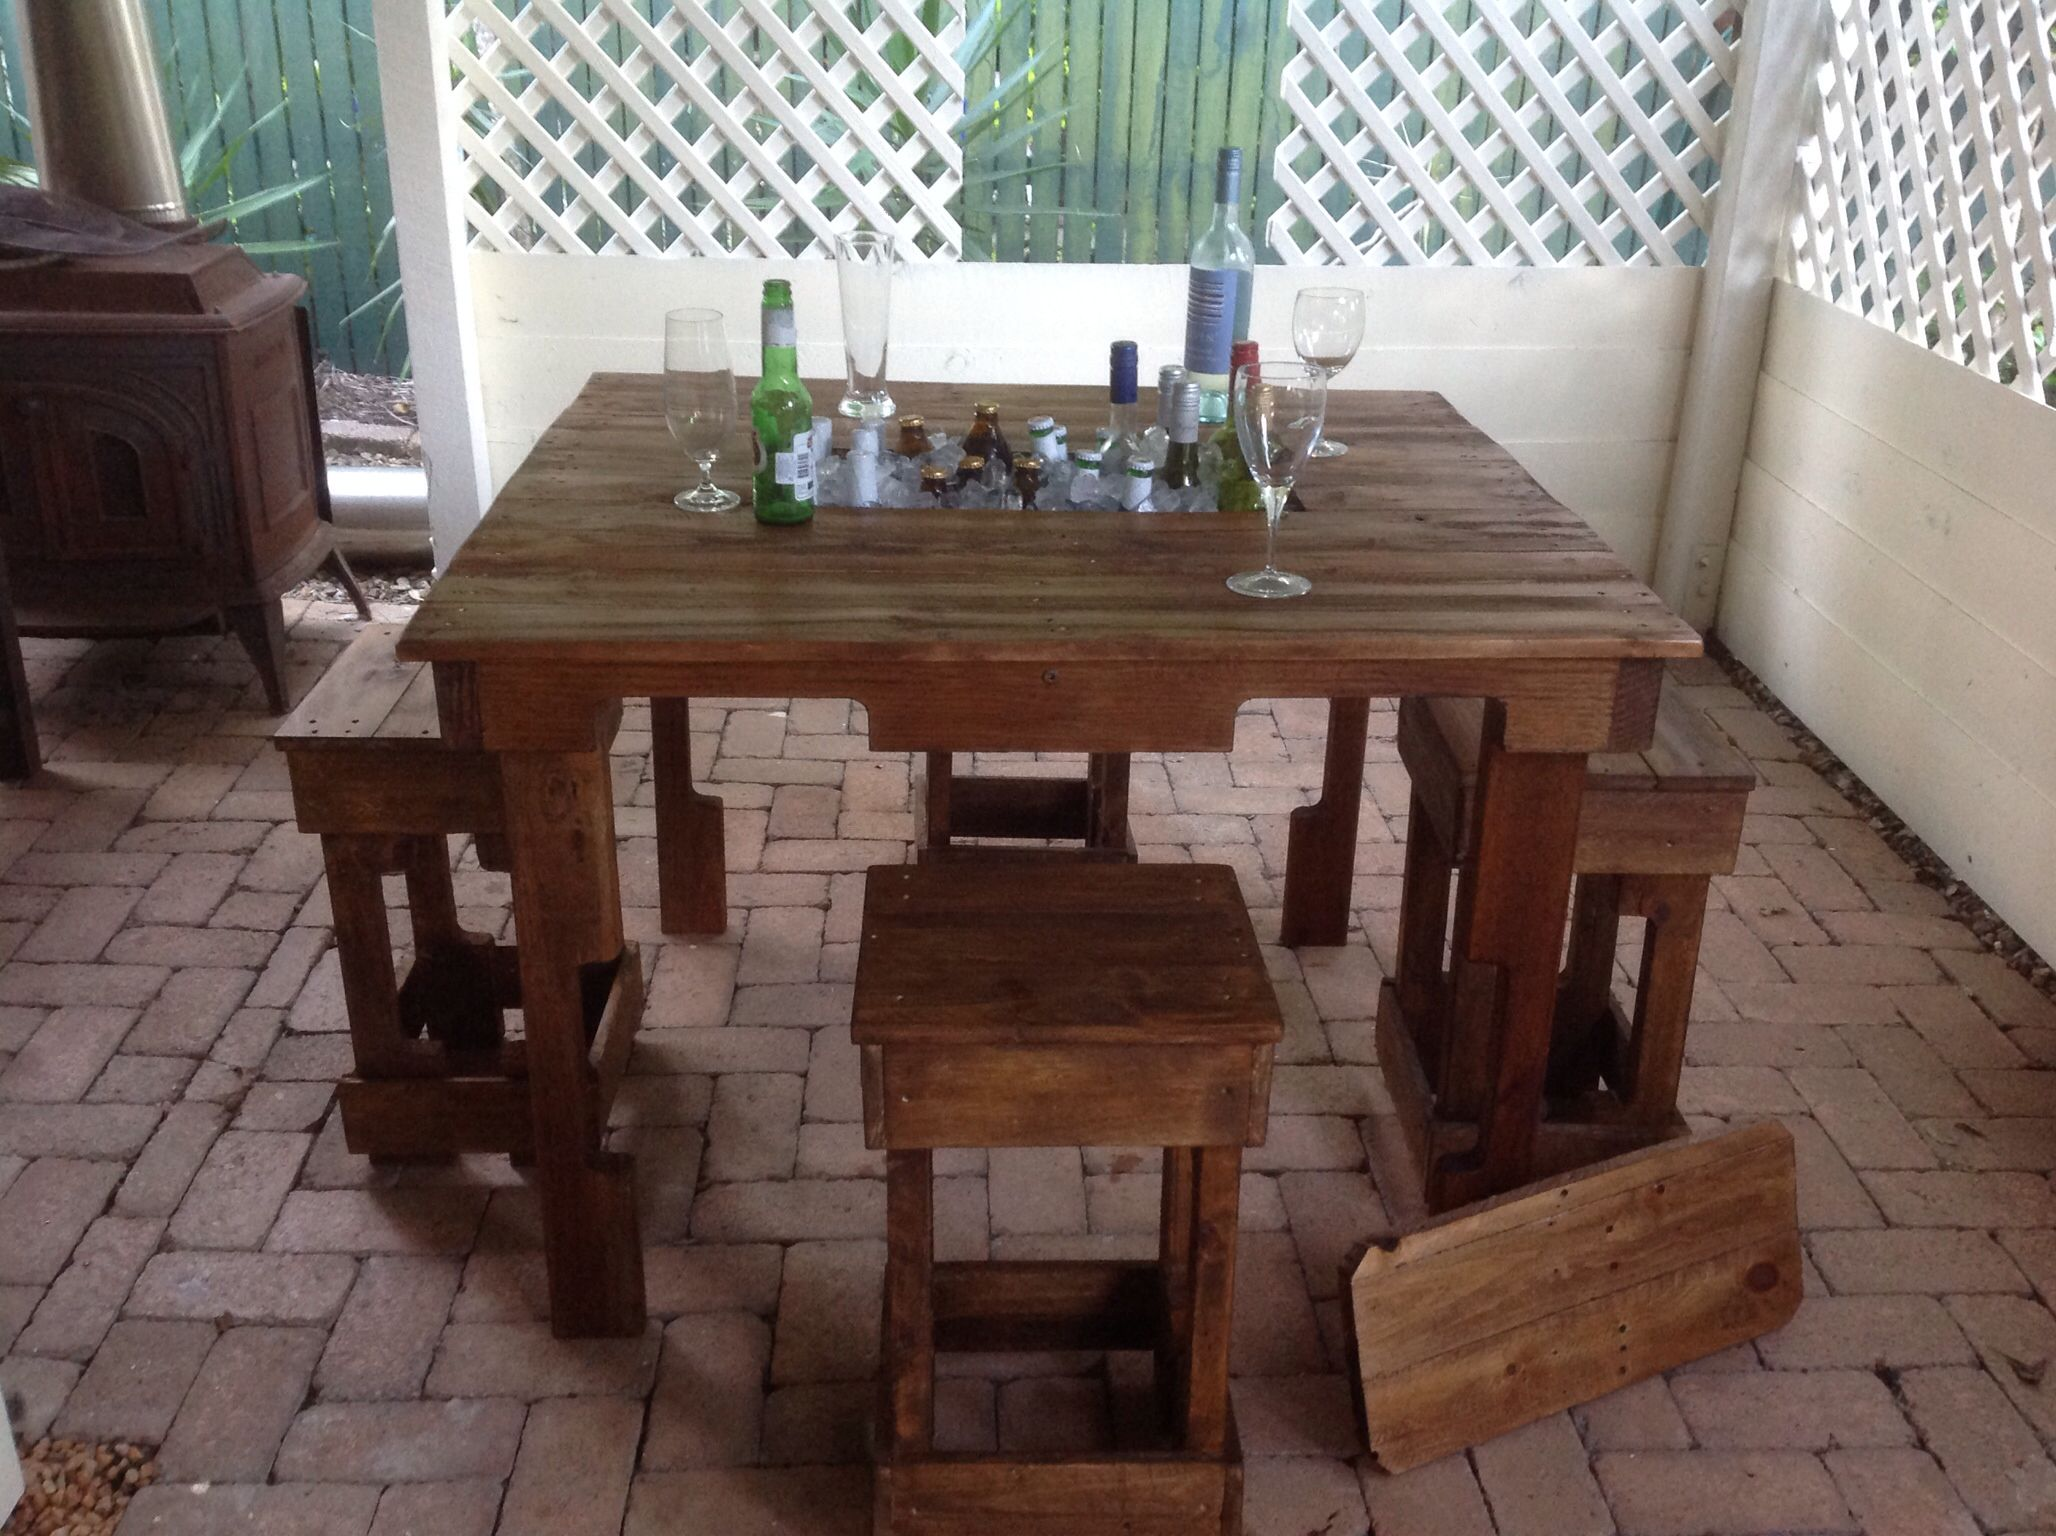 Pallet wood entertainer table with drinks container pallet wood pallet wood entertainer table with drinks container pallet wood stools made by touchwood creations coast australiasunshine geotapseo Choice Image